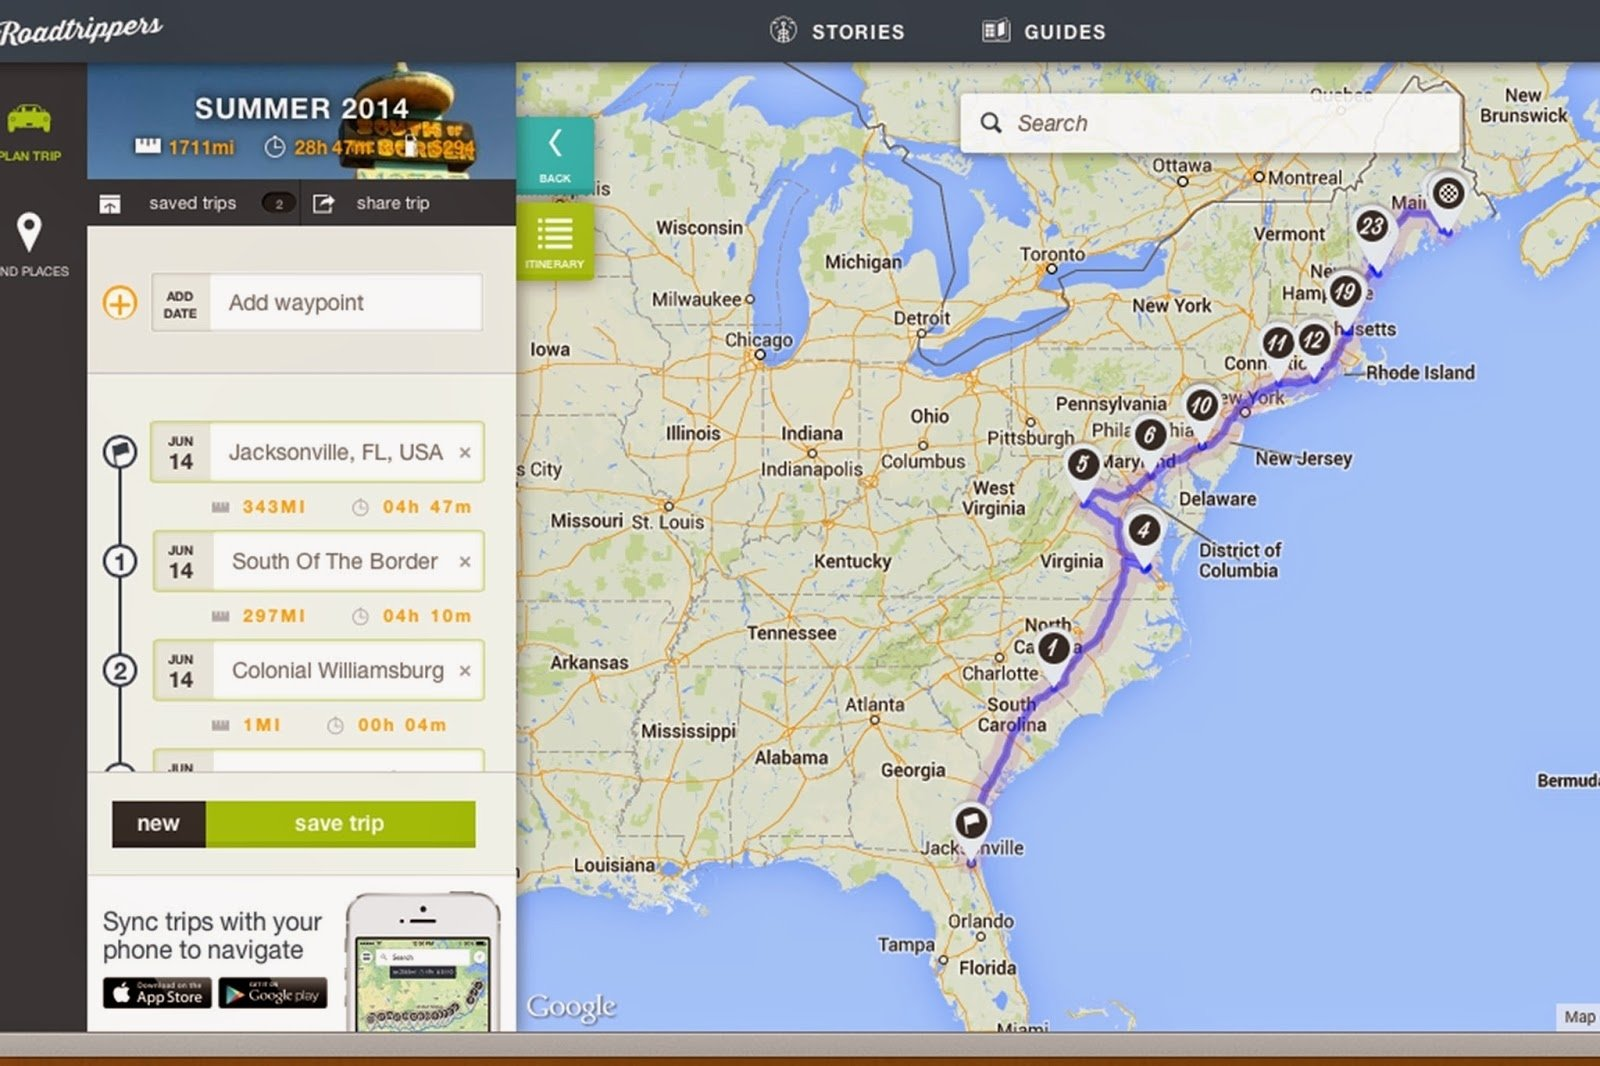 daydreaming and sightseeing: east coast road trip with the family!